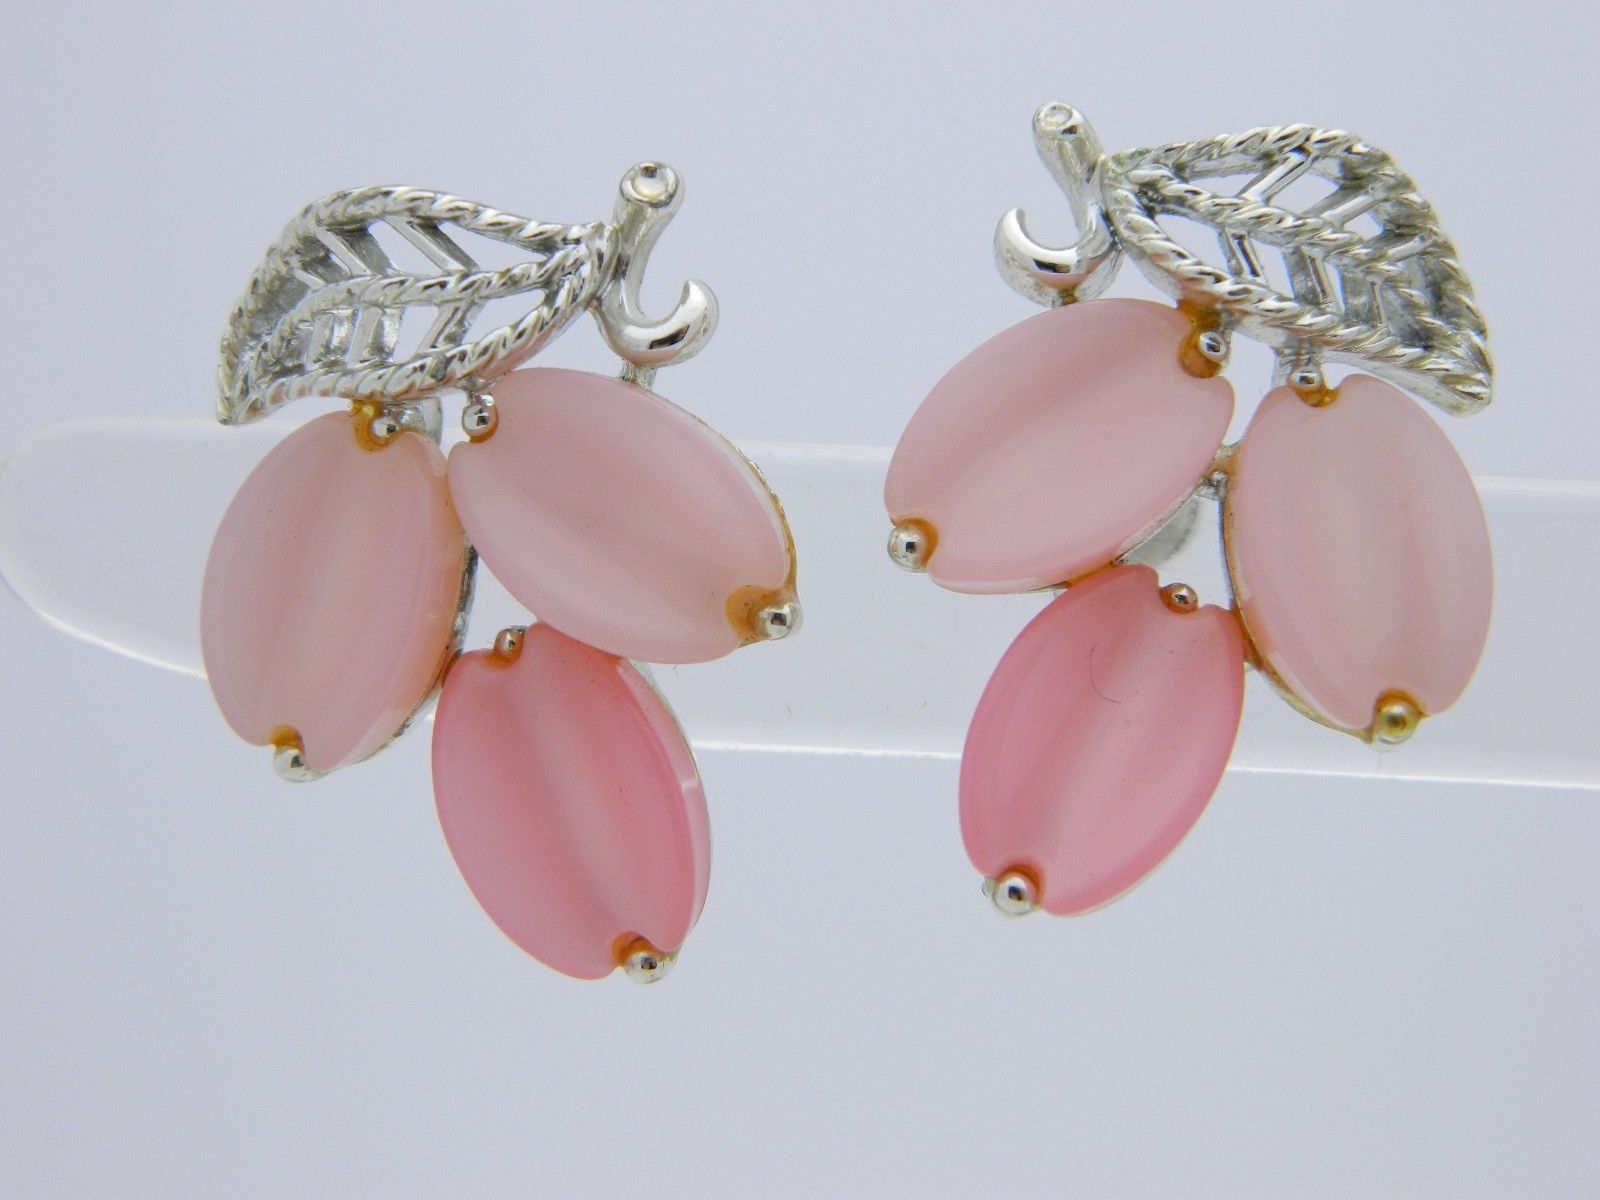 VTG LISNER Signed Silver Tone Pink Thermoset Screwback Earrings